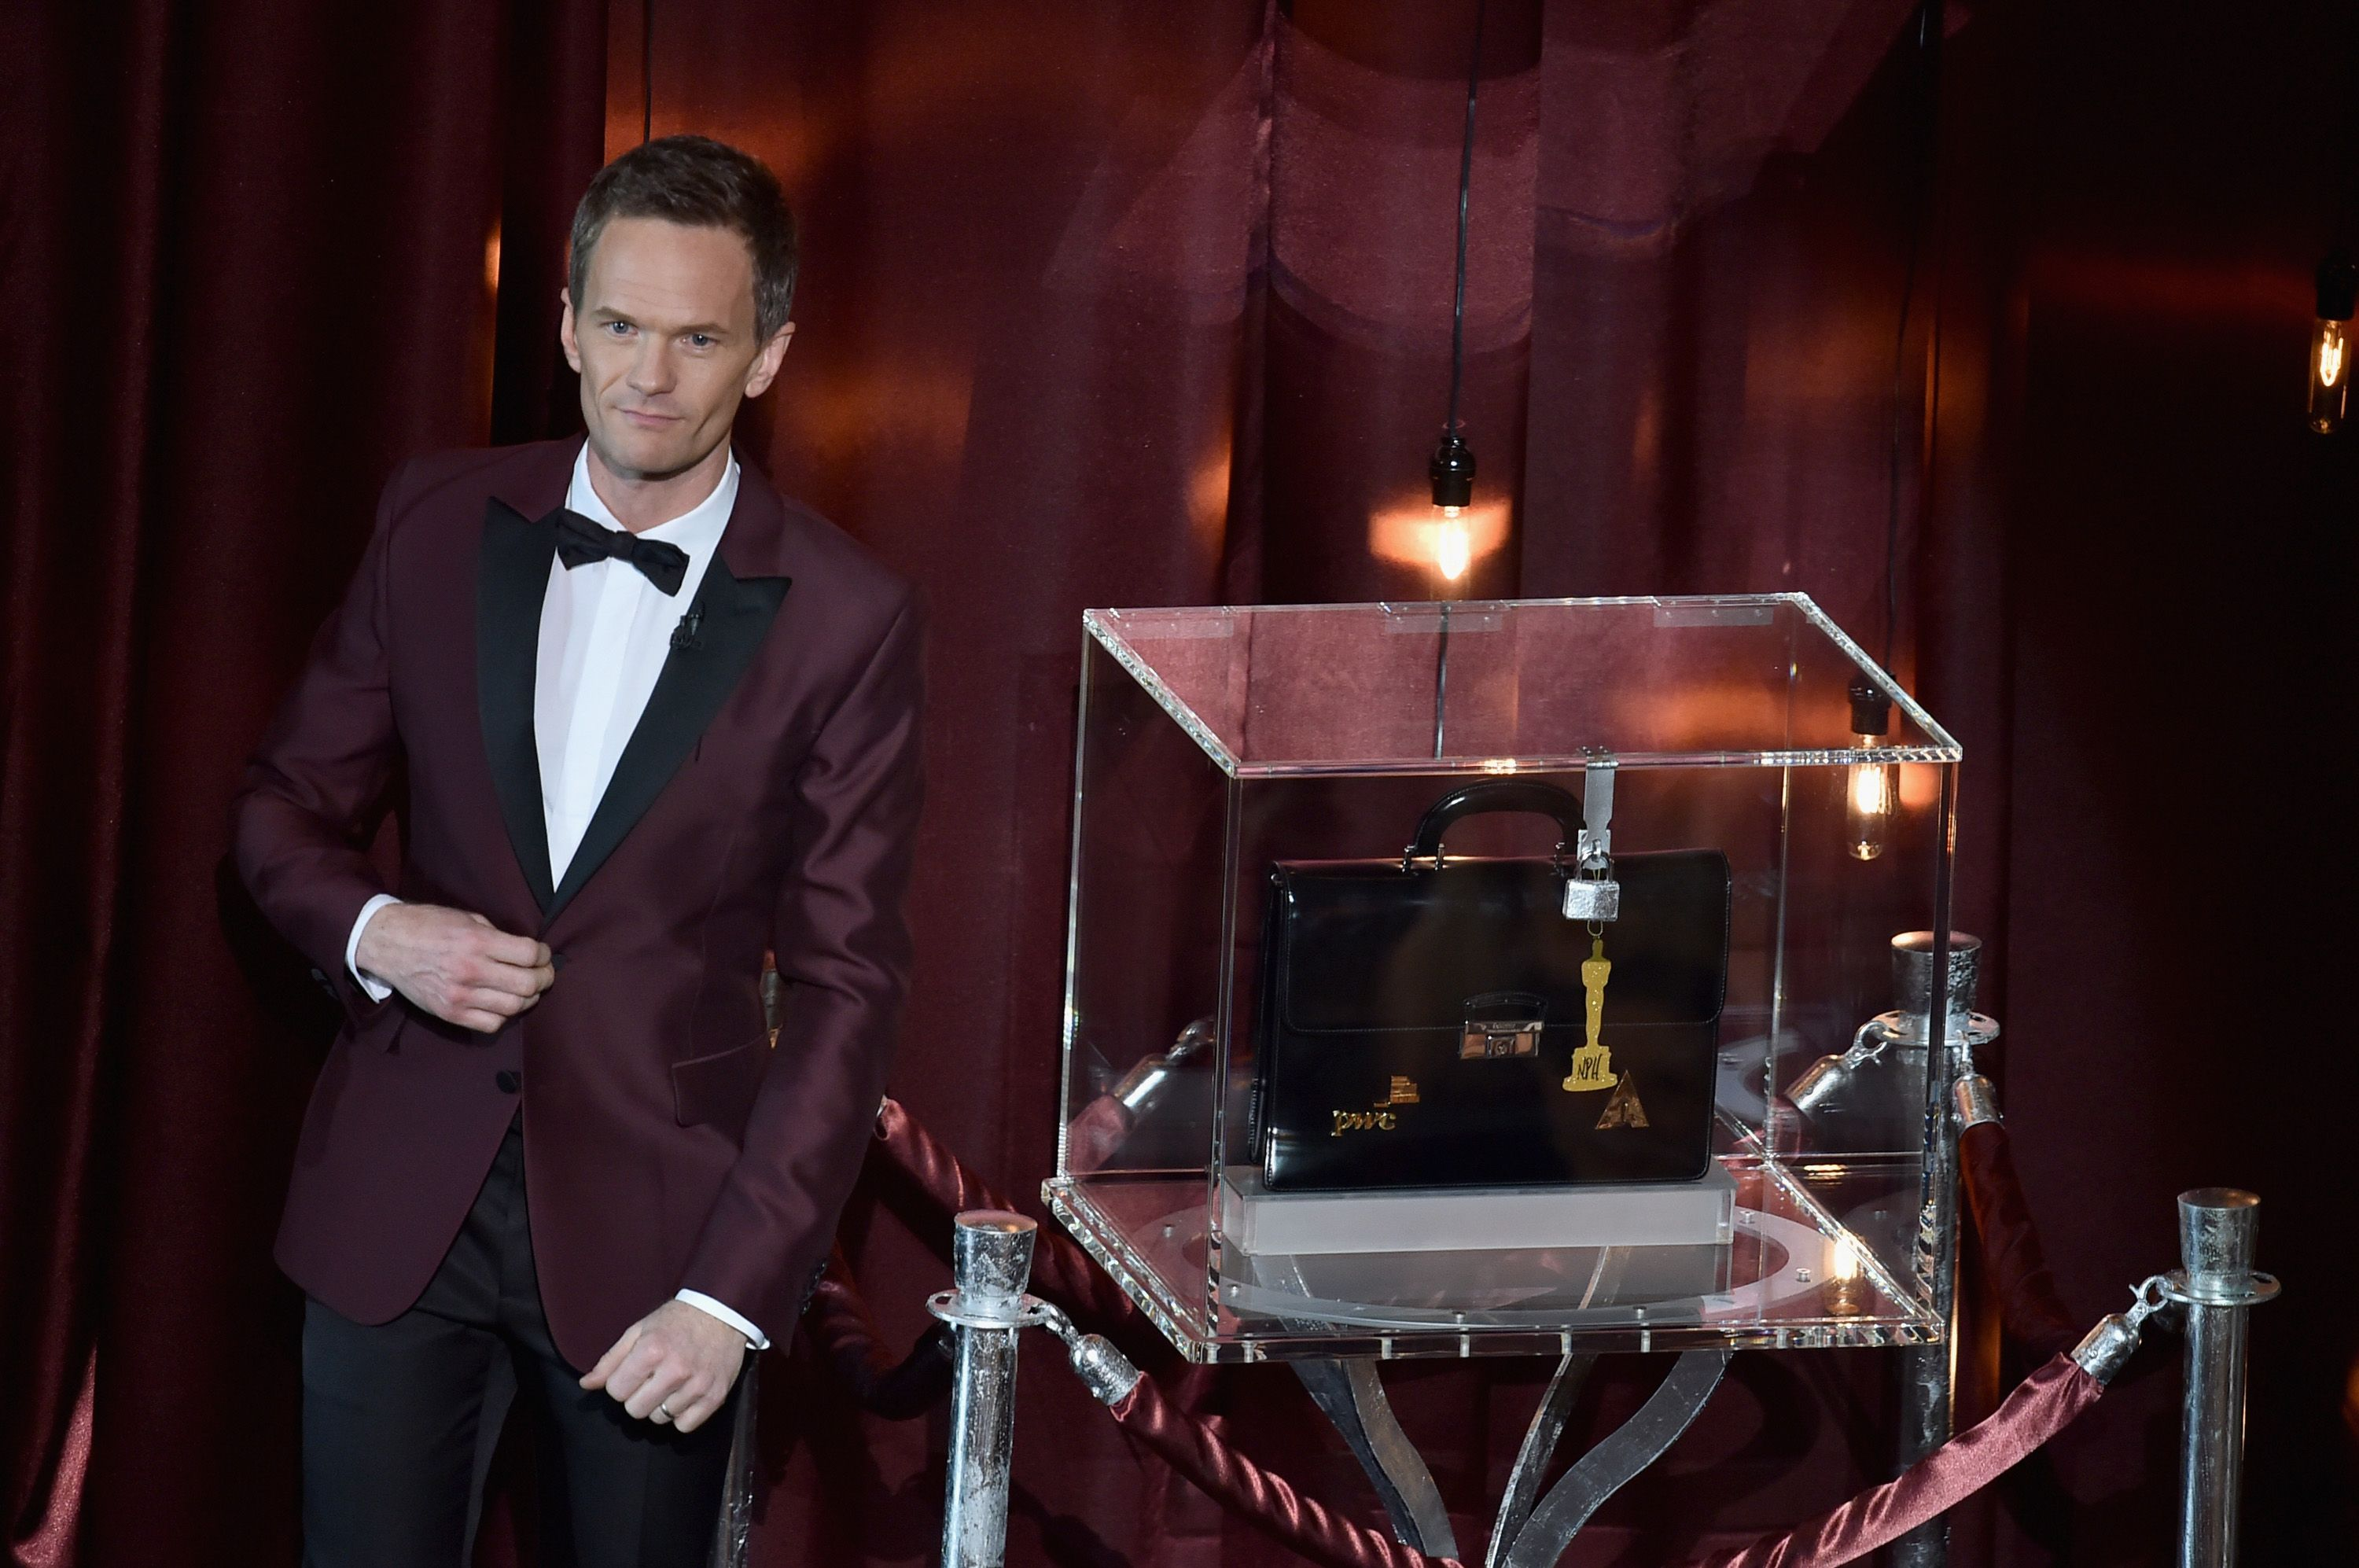 2015: When Neil Patrick Harris performed a magic trick on stage... Harris pulled off the biggest magic trick while hosting the Oscars, locking his winner predictions in a briefcase inside a glass box—and his guesses were shockingly accurate.